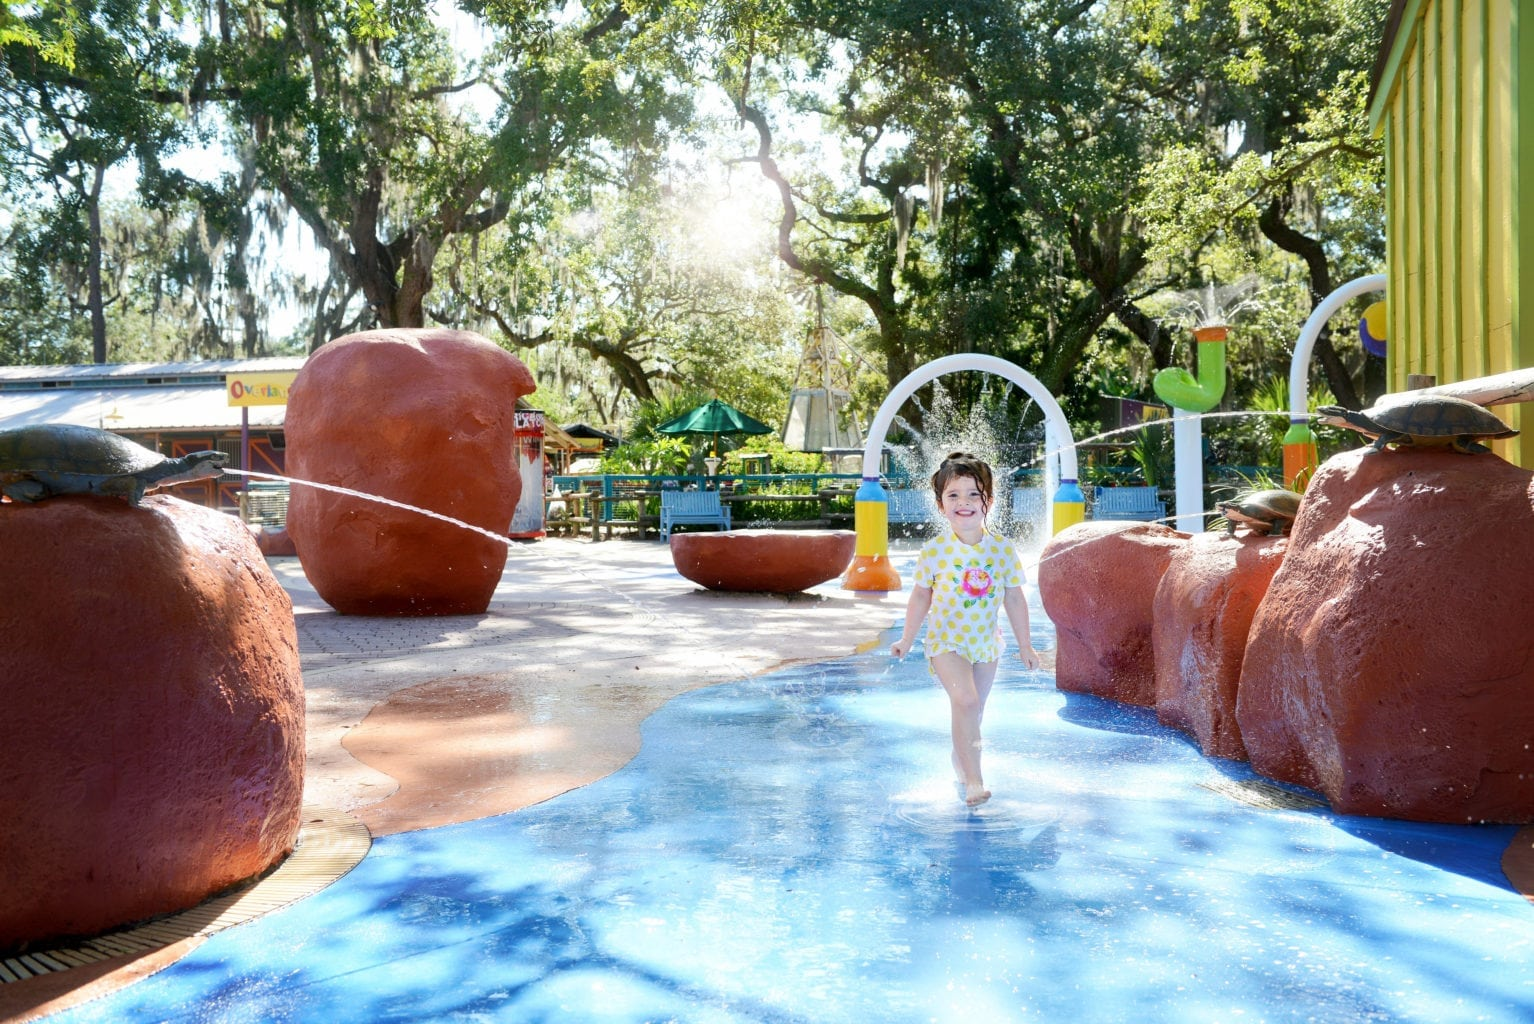 Lowry Park Zoo Splash Pad Things to Do in Tampa